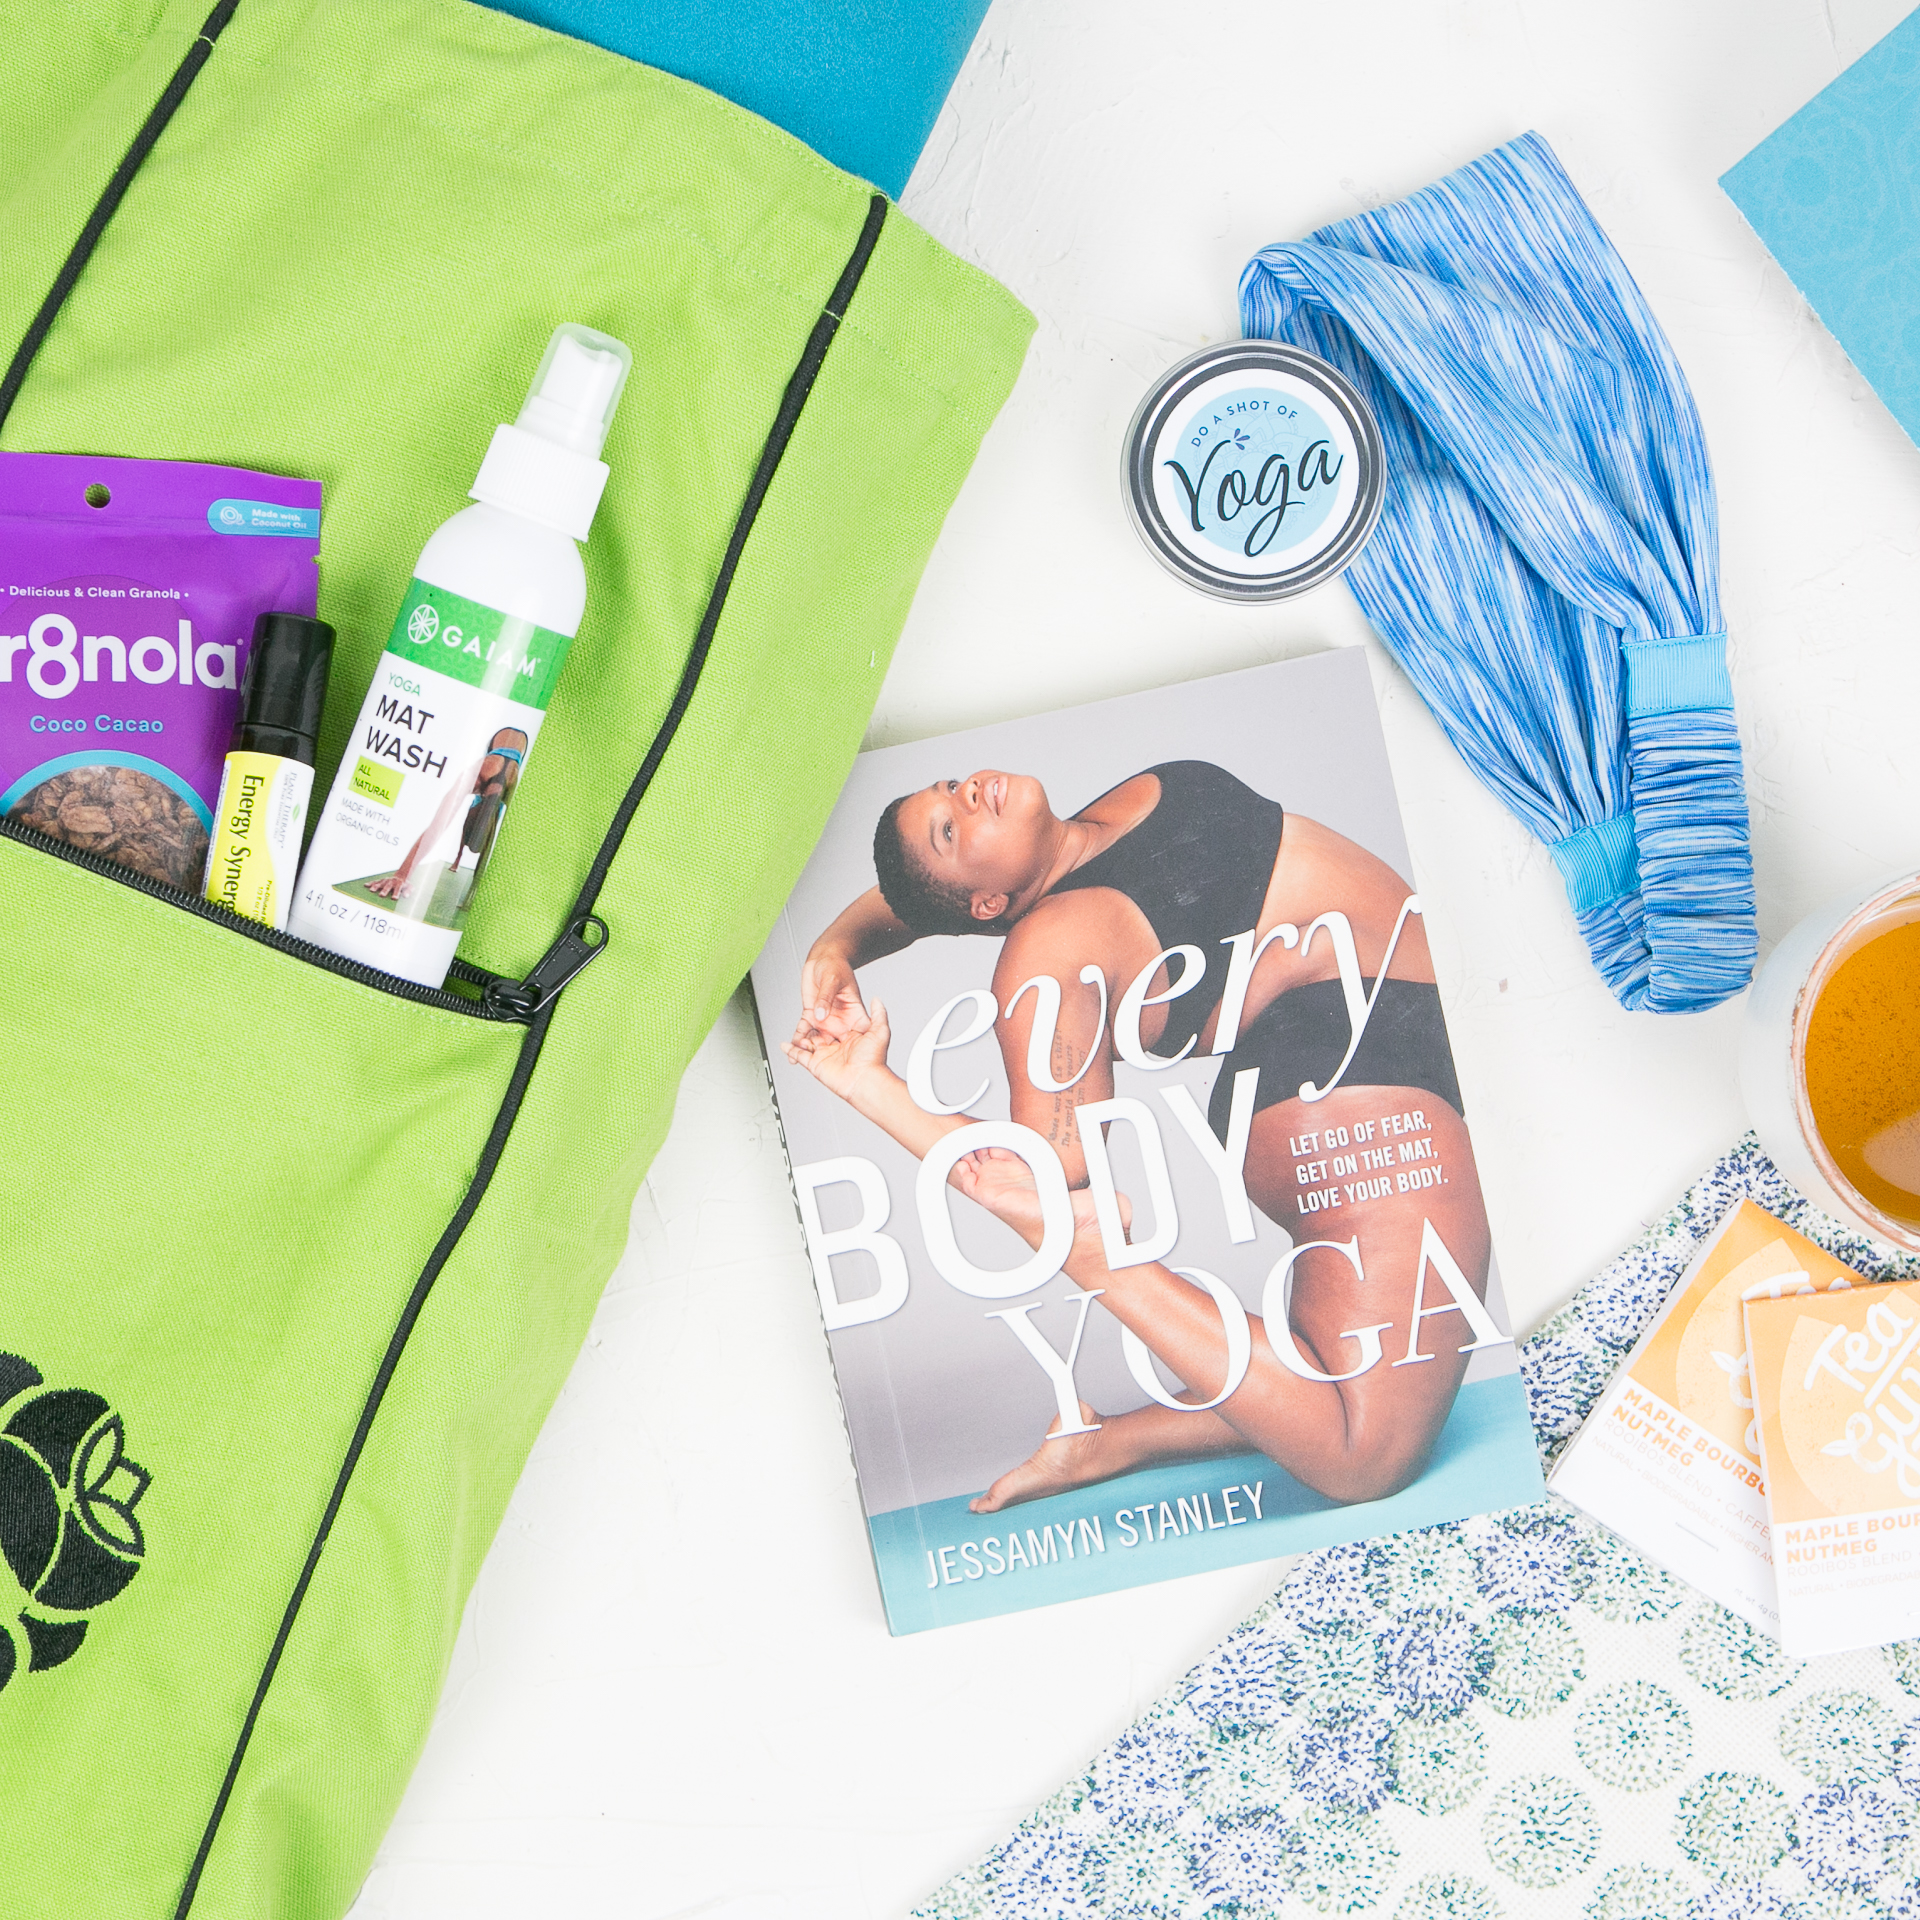 Do a shot of yoga subscription box items